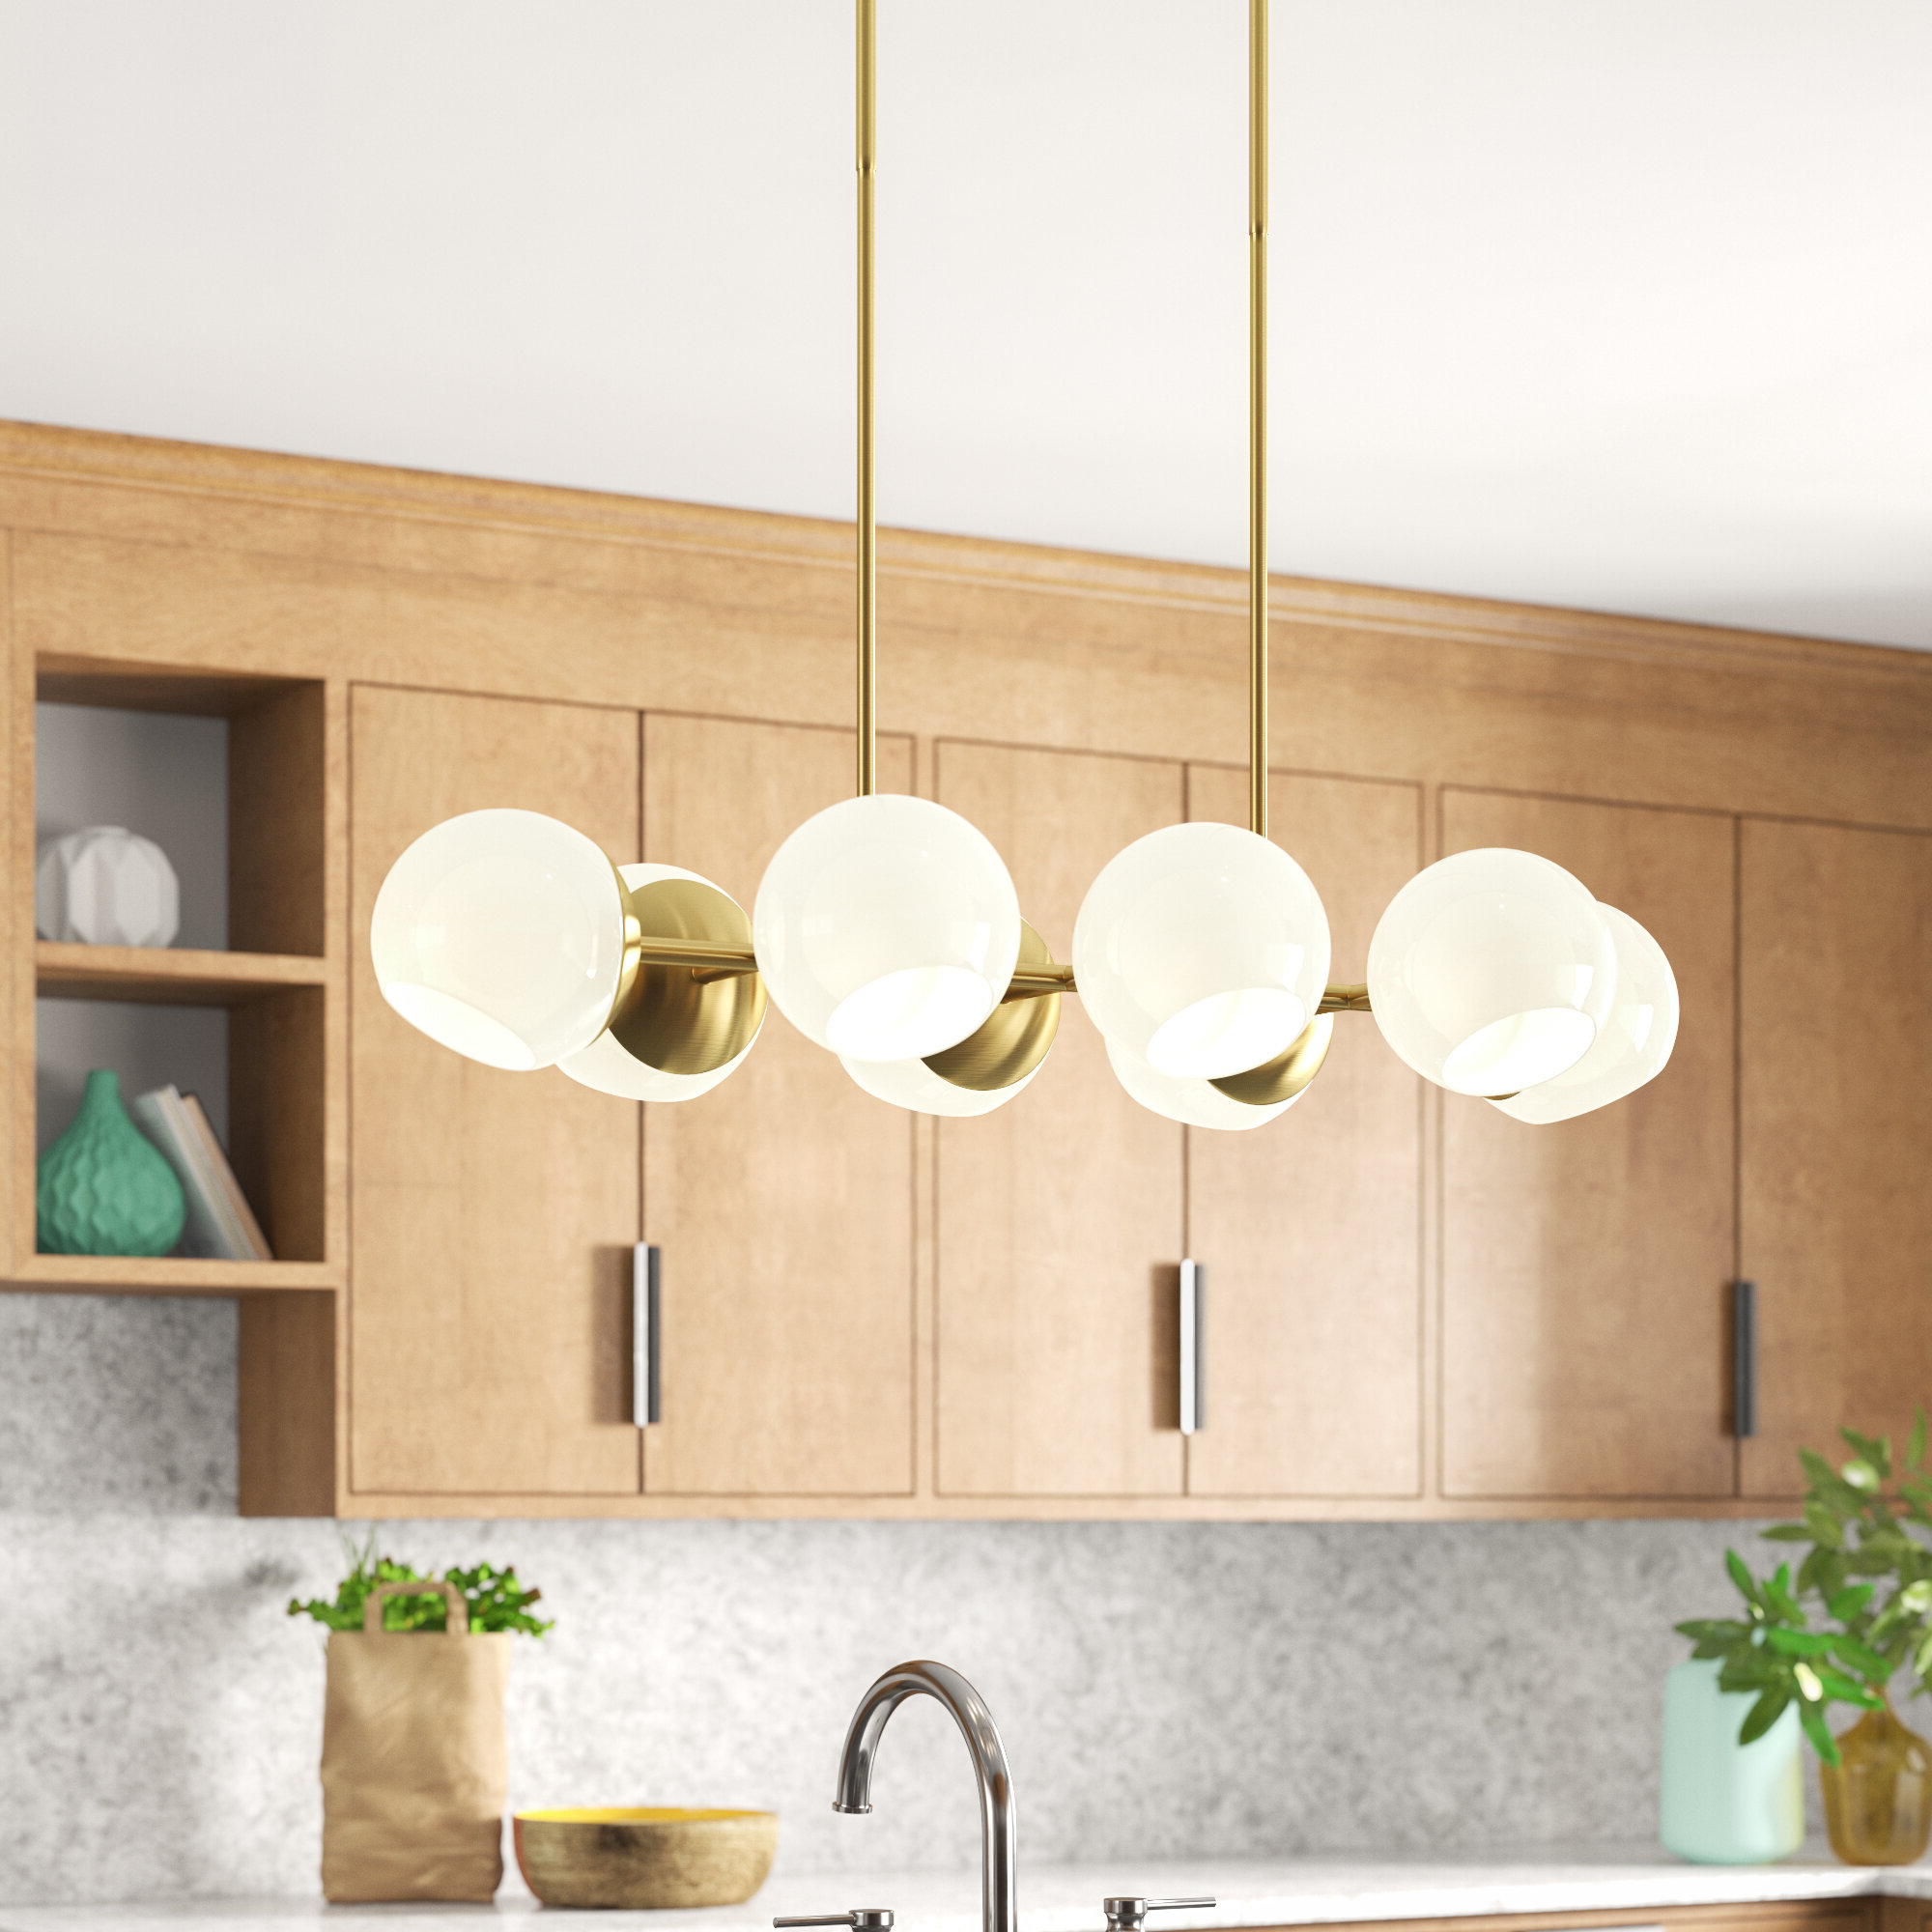 Widely Used Ashley 8 Light Kitchen Island Linear Pendant Intended For Neal 9 Light Kitchen Island Teardrop Pendants (View 20 of 20)